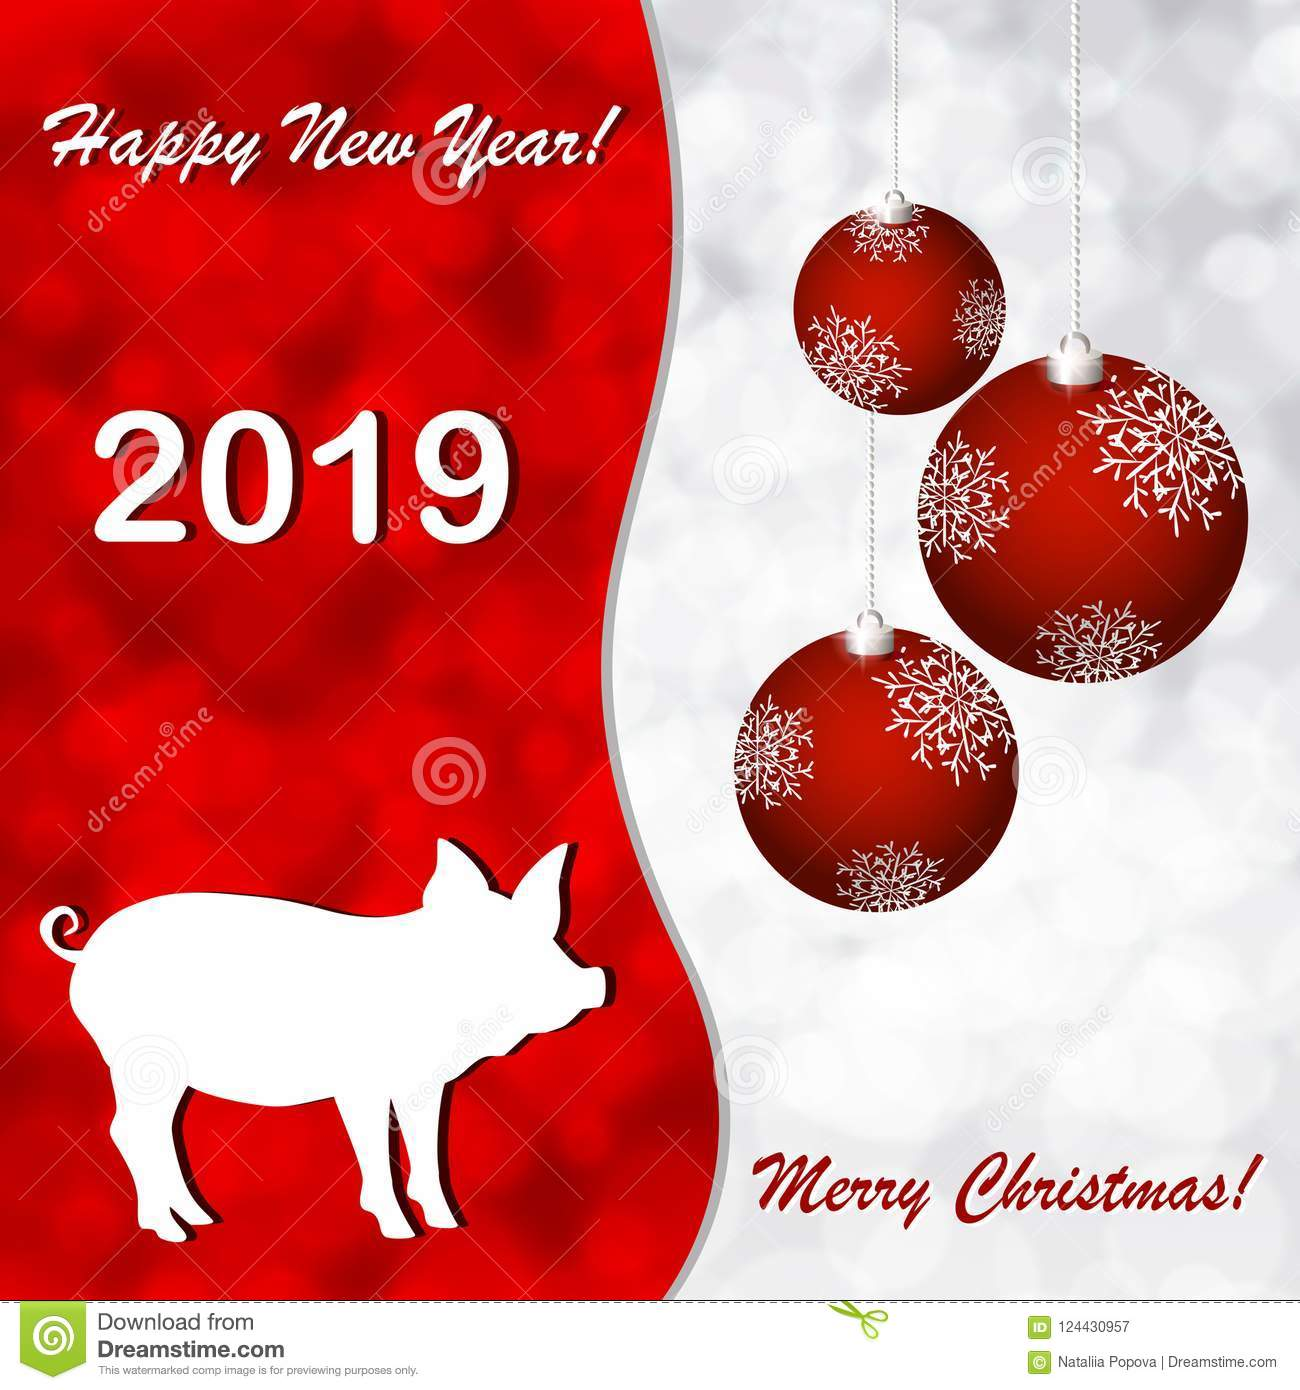 Greeting Cards With A New Year Of The Pig Stock Illustration ...